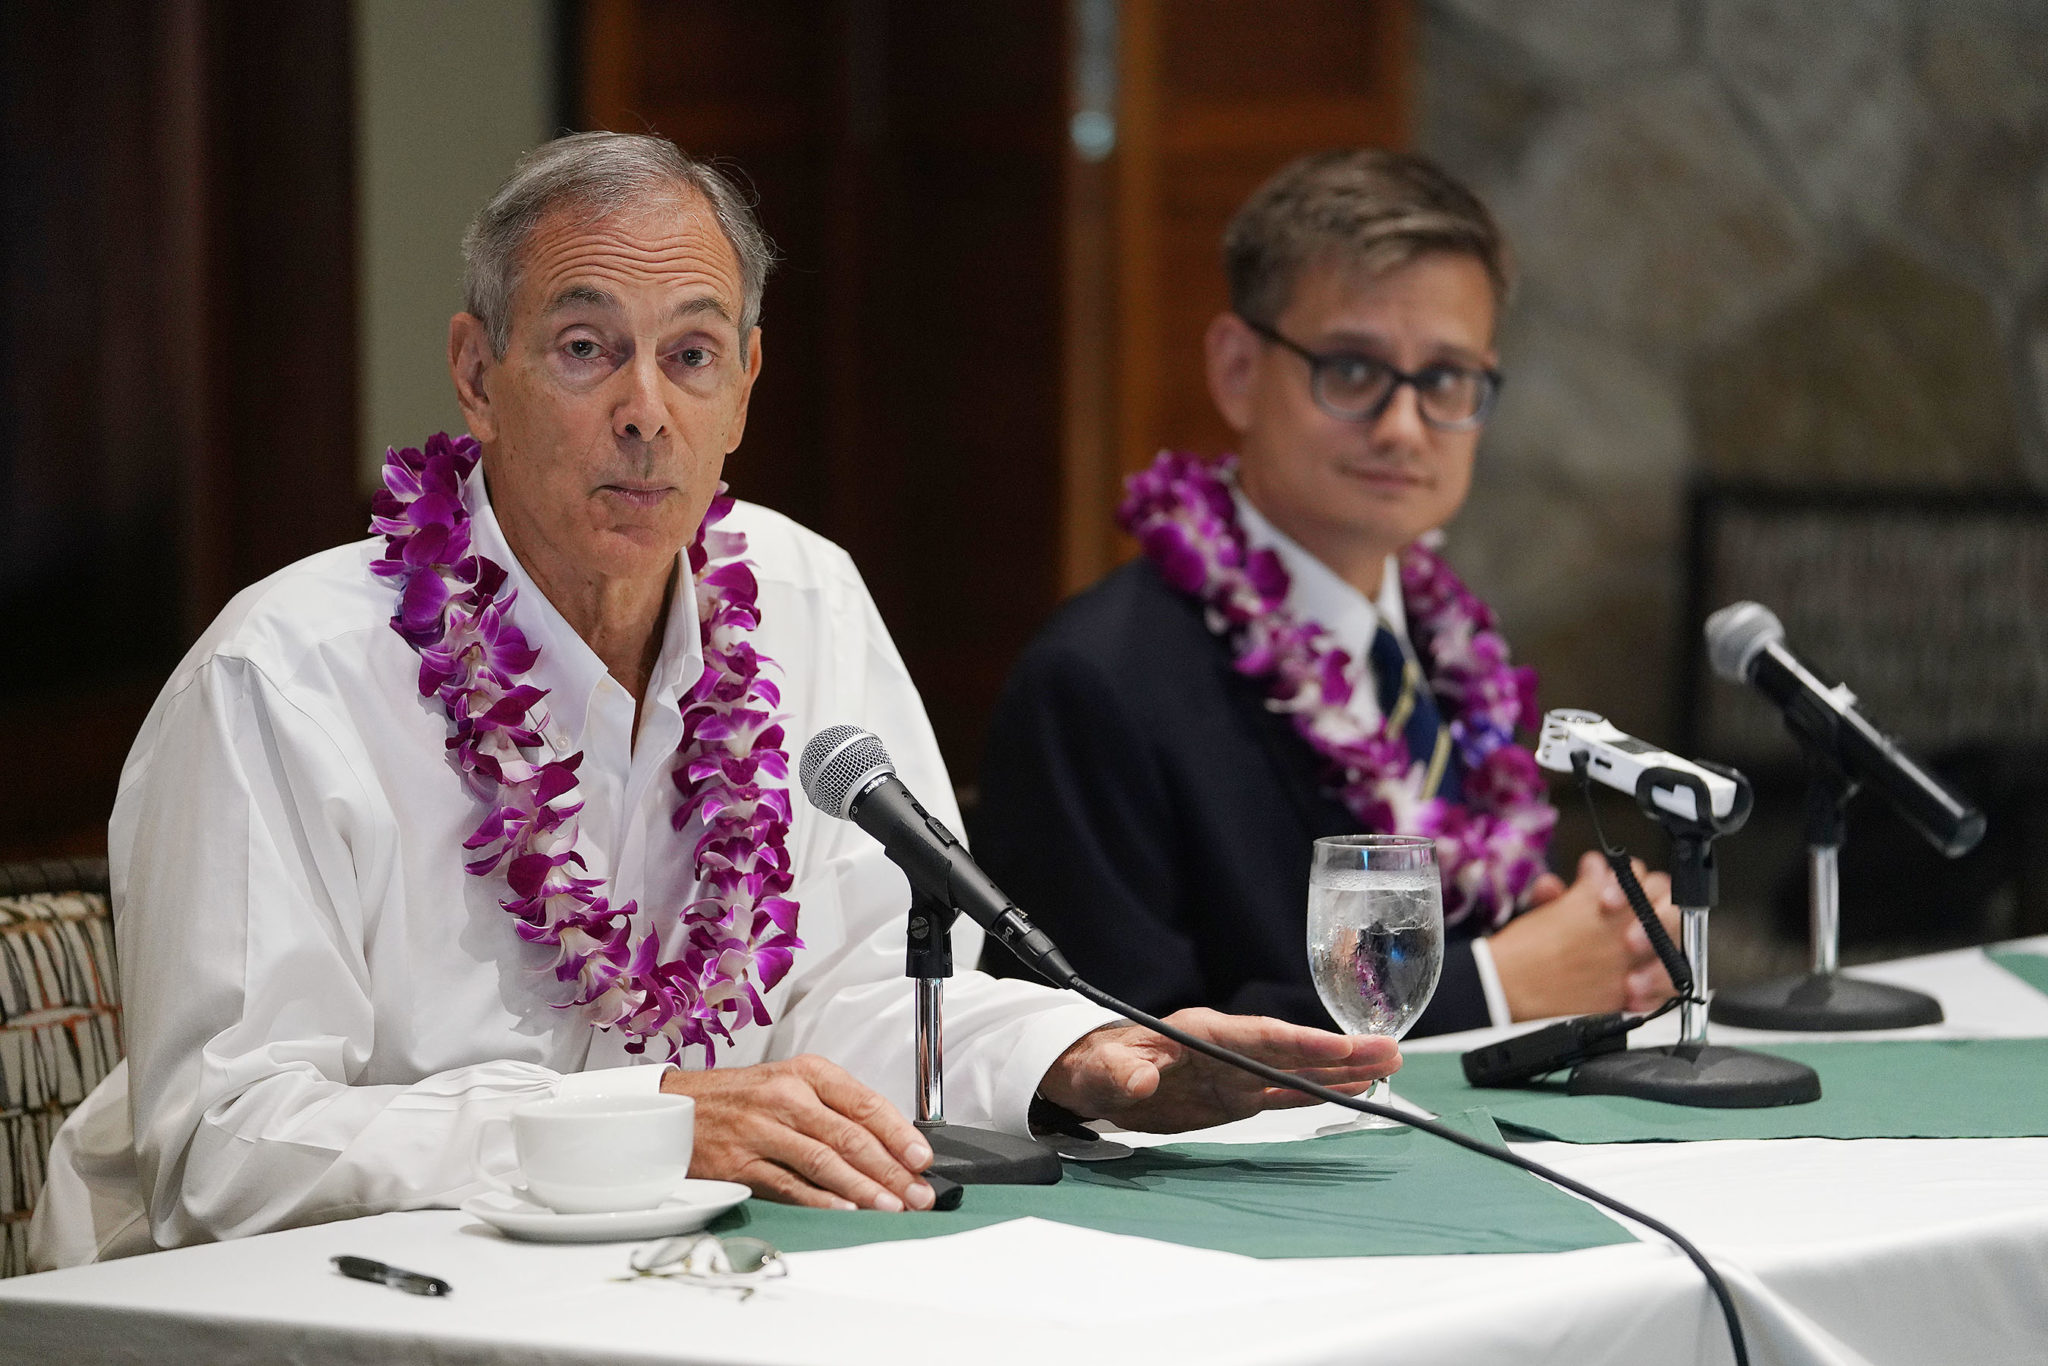 Hawaii Unions Say Little Has Changed Since Landmark Janus